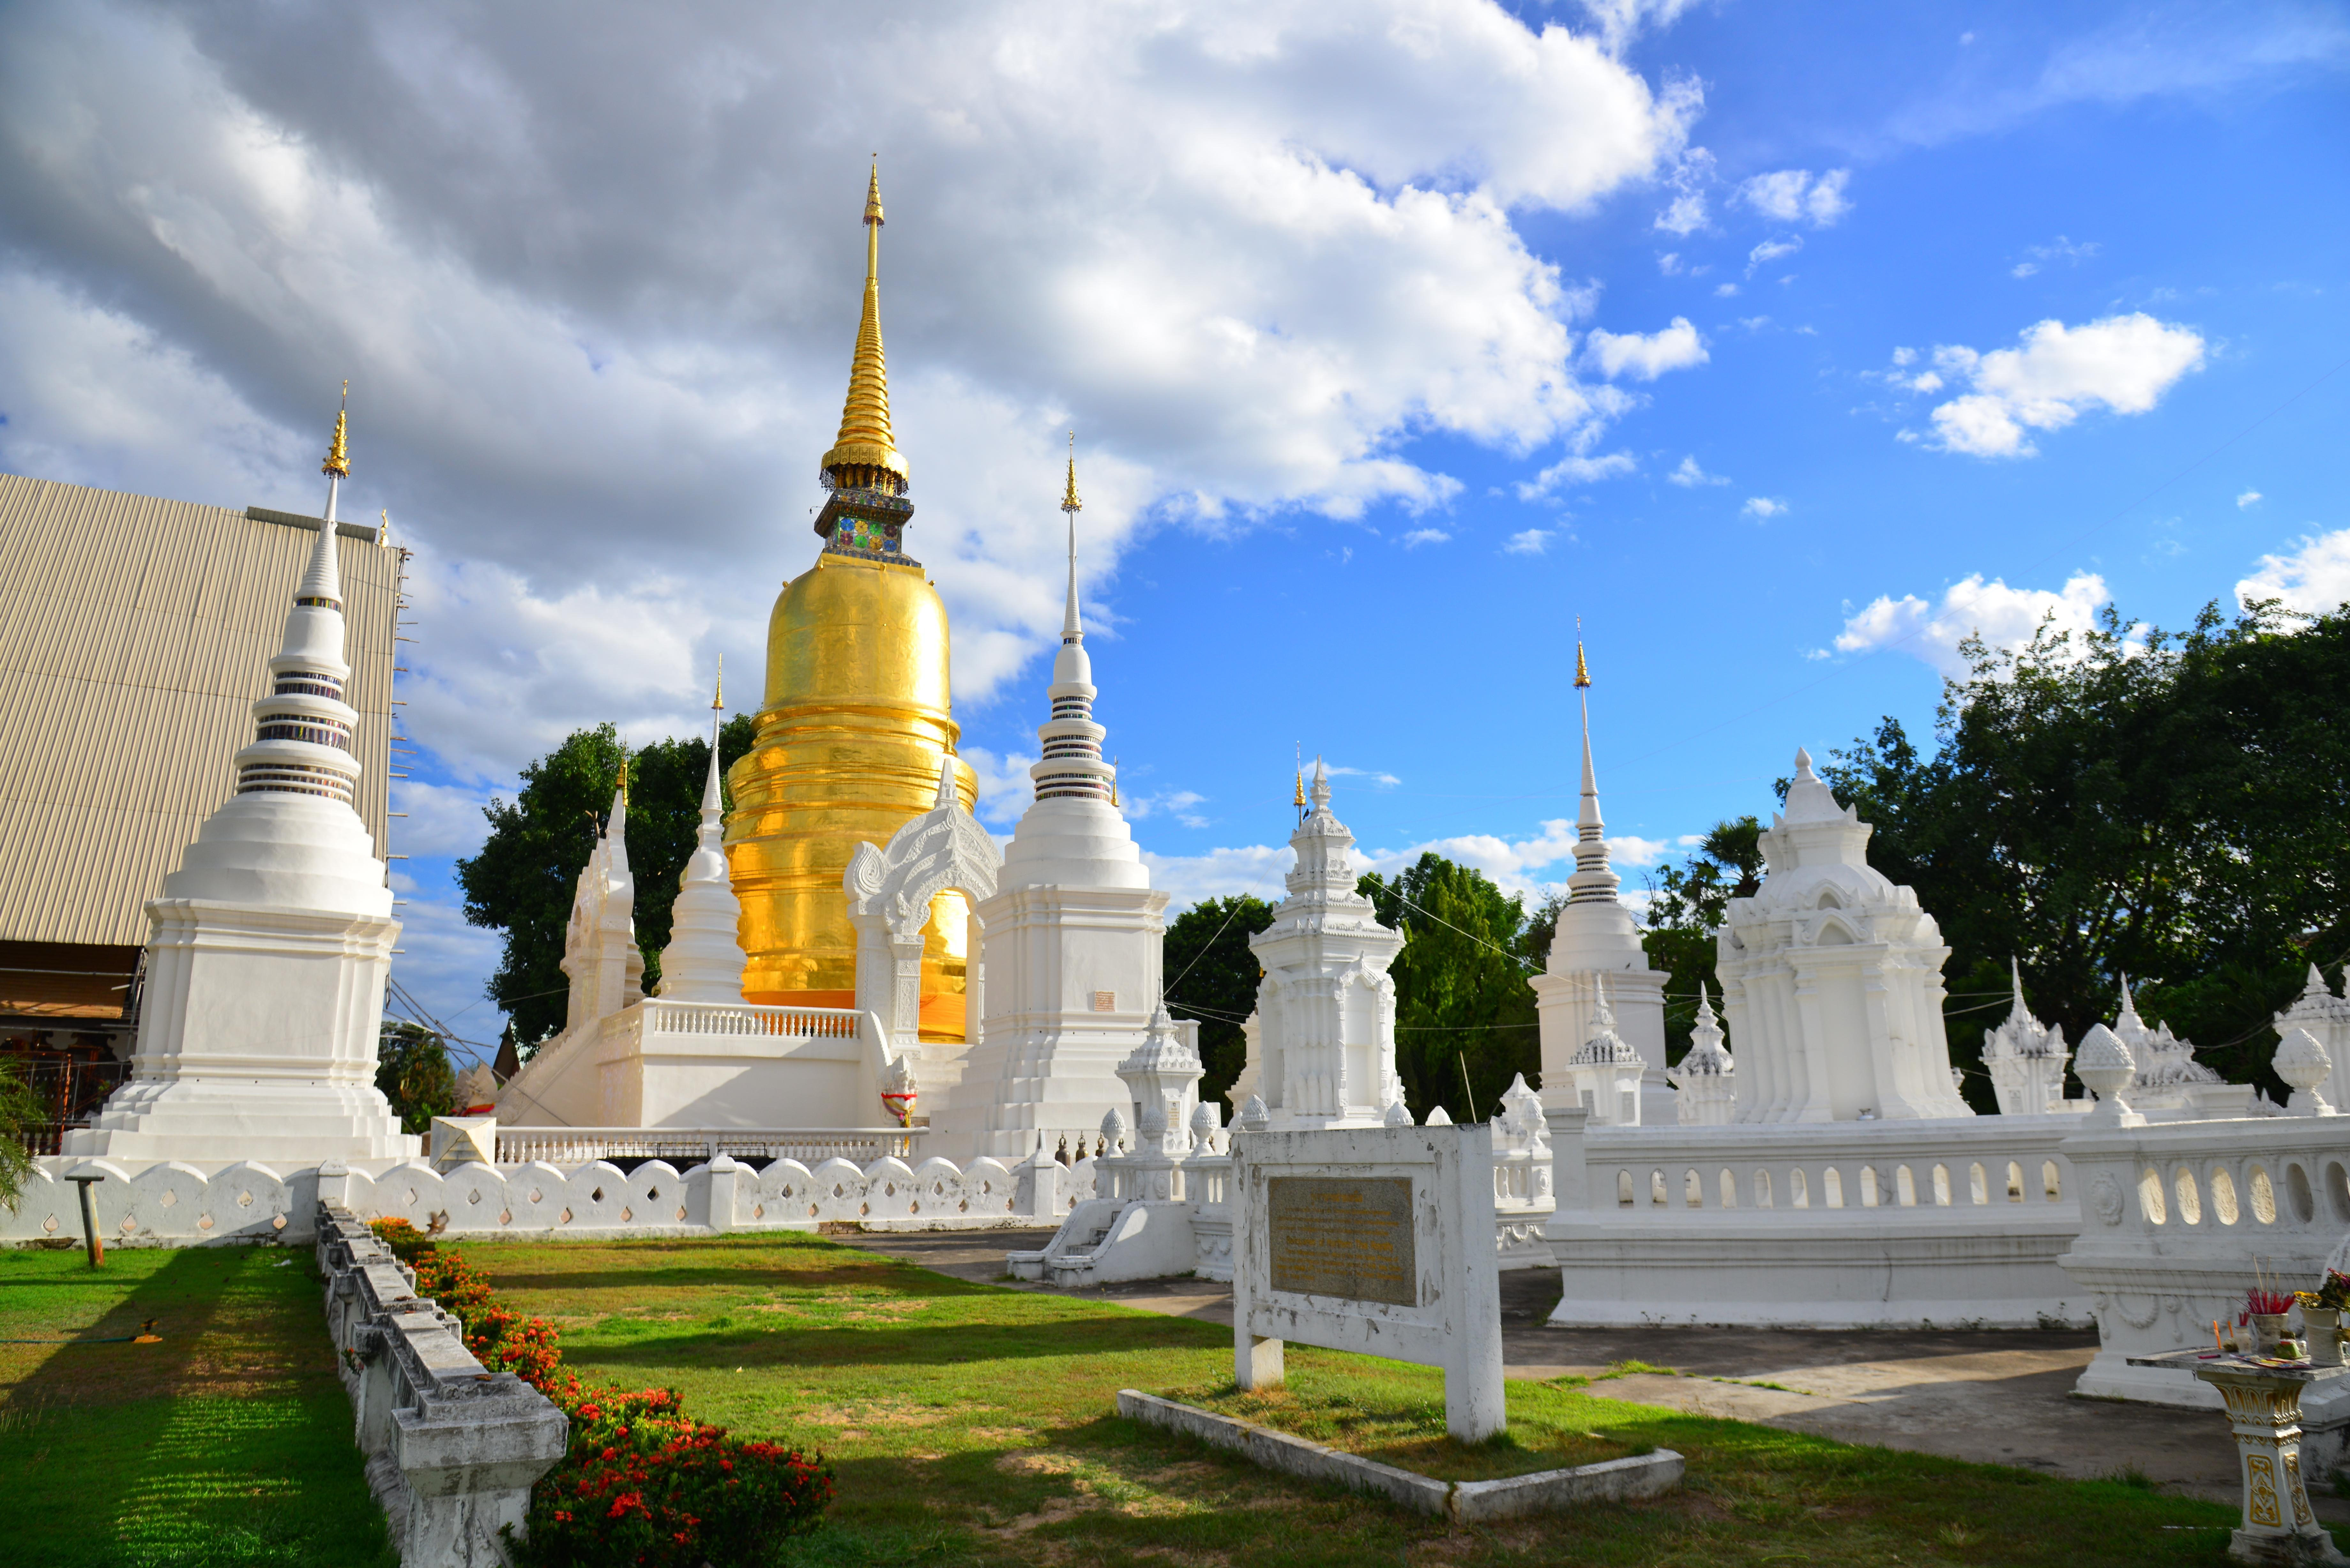 How to Spend 2 Days in Chiang Mai